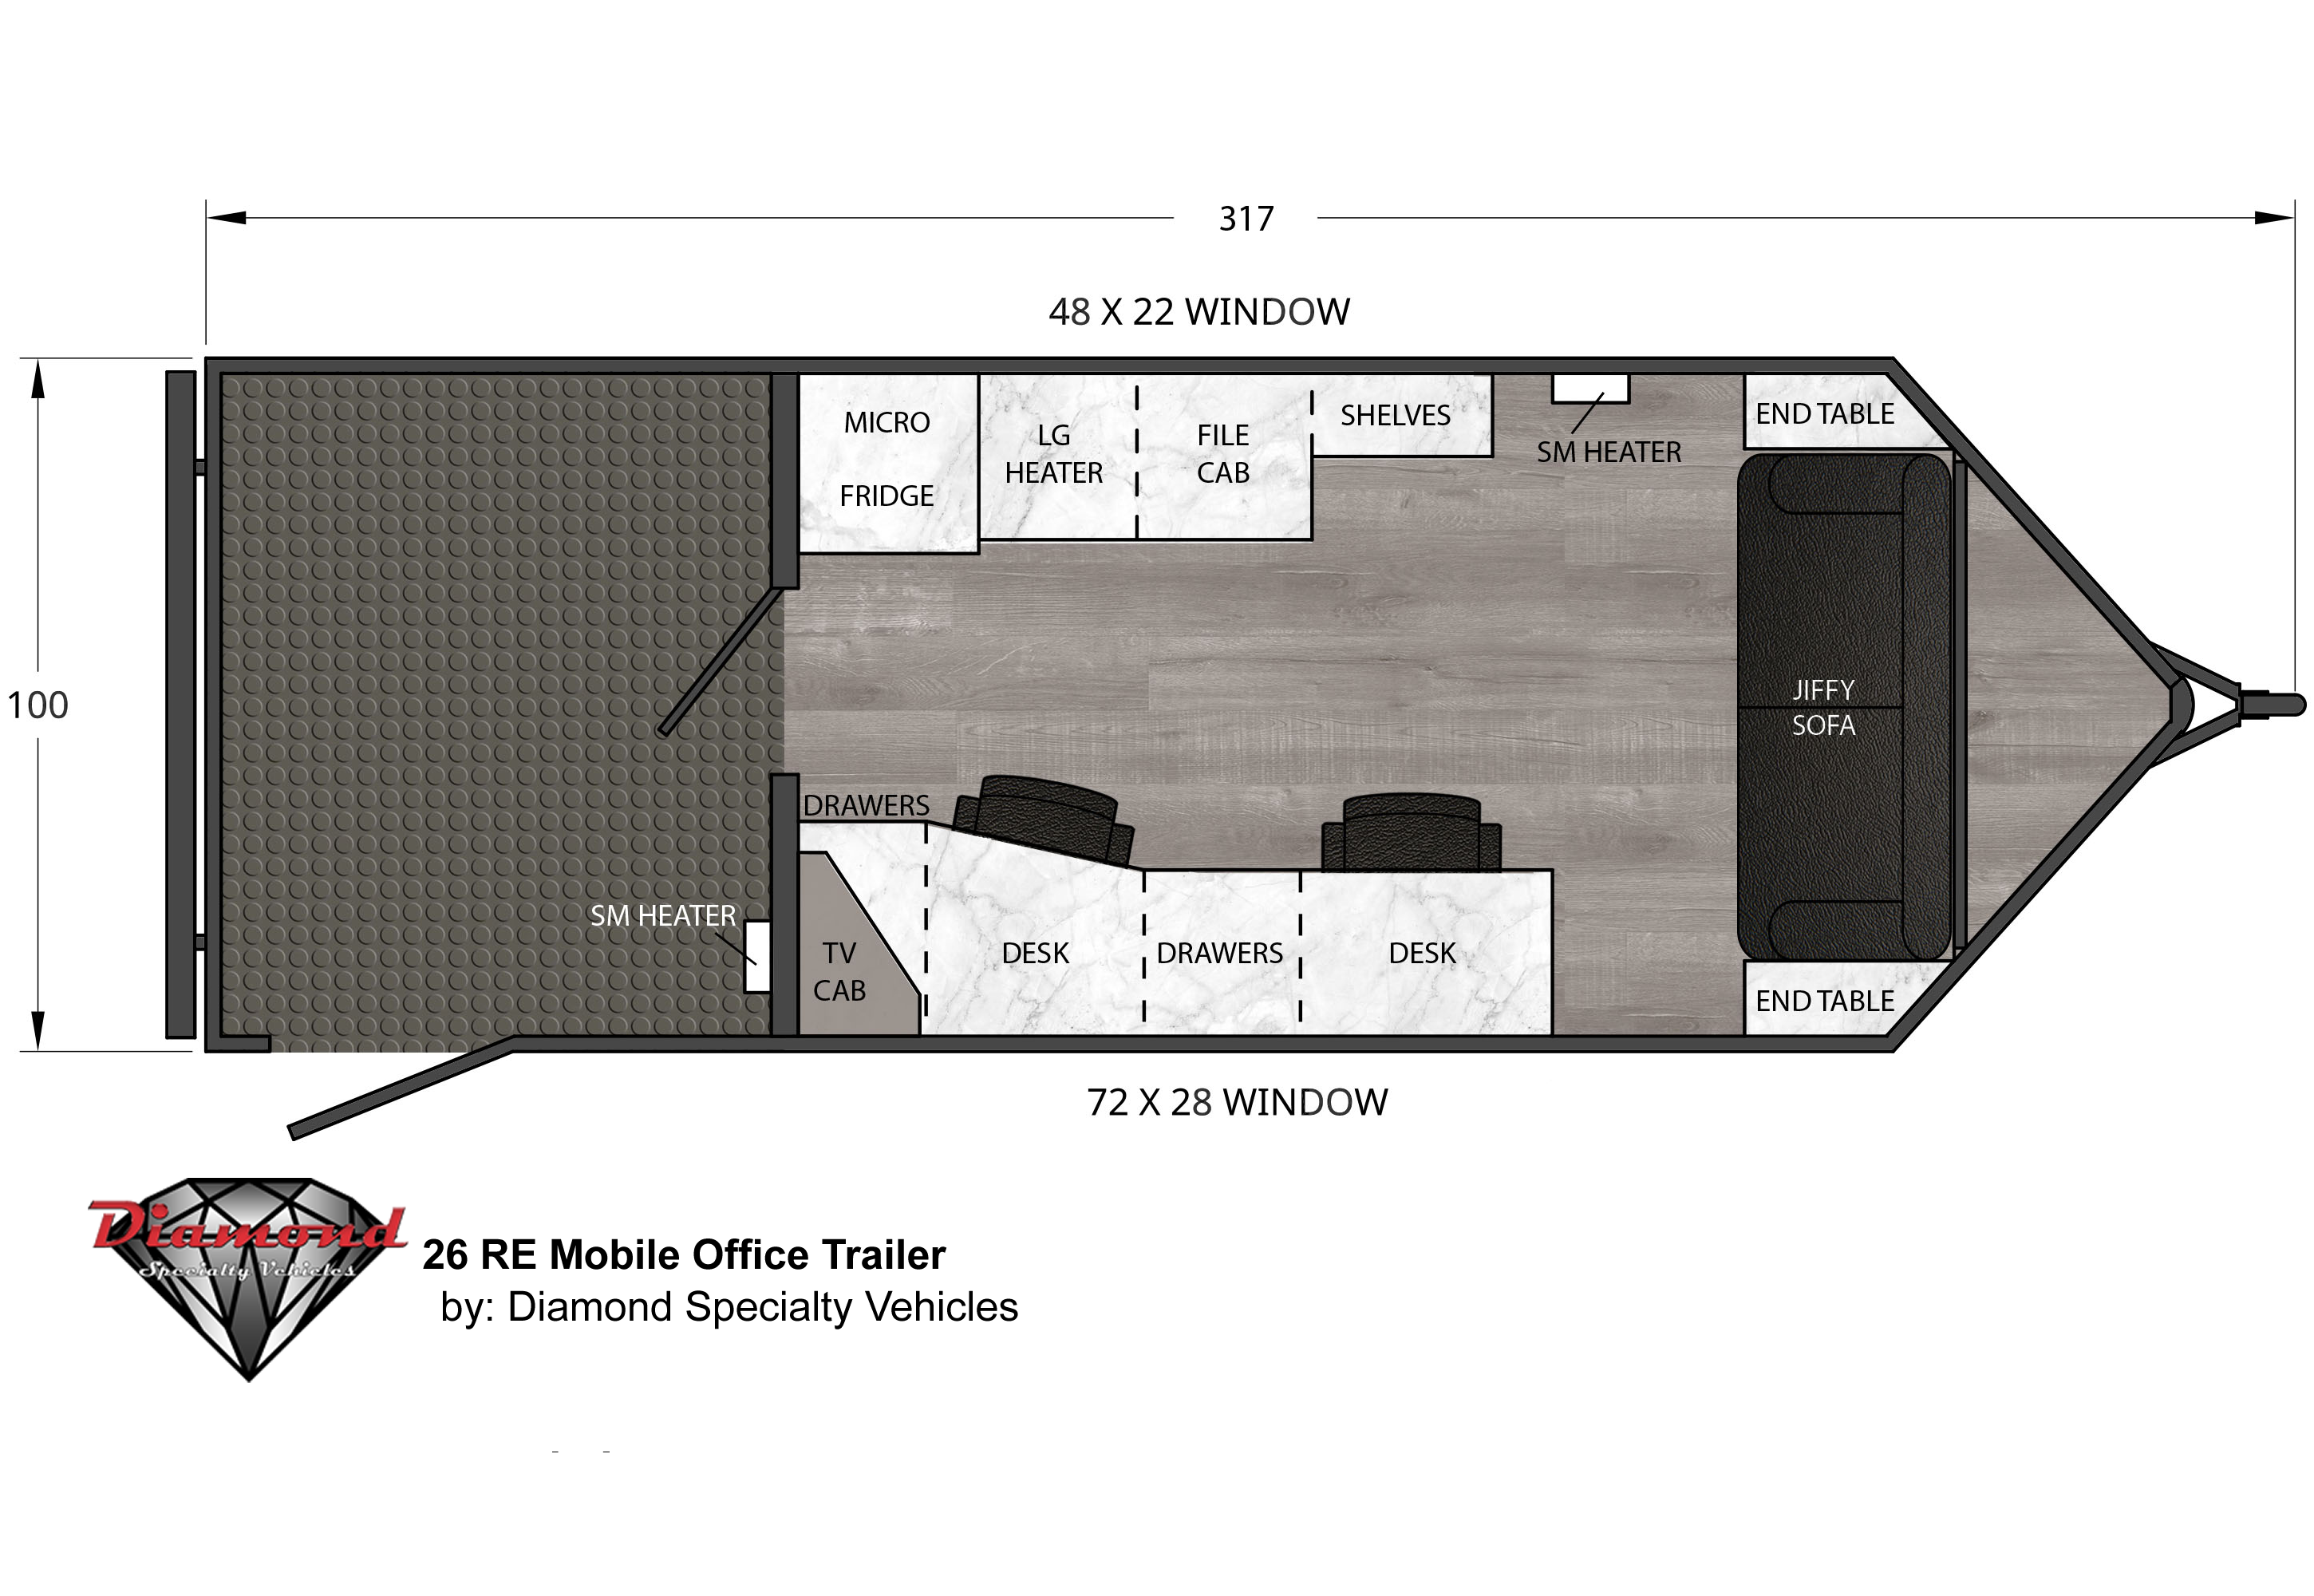 Mobile Office Trailer 26 RE